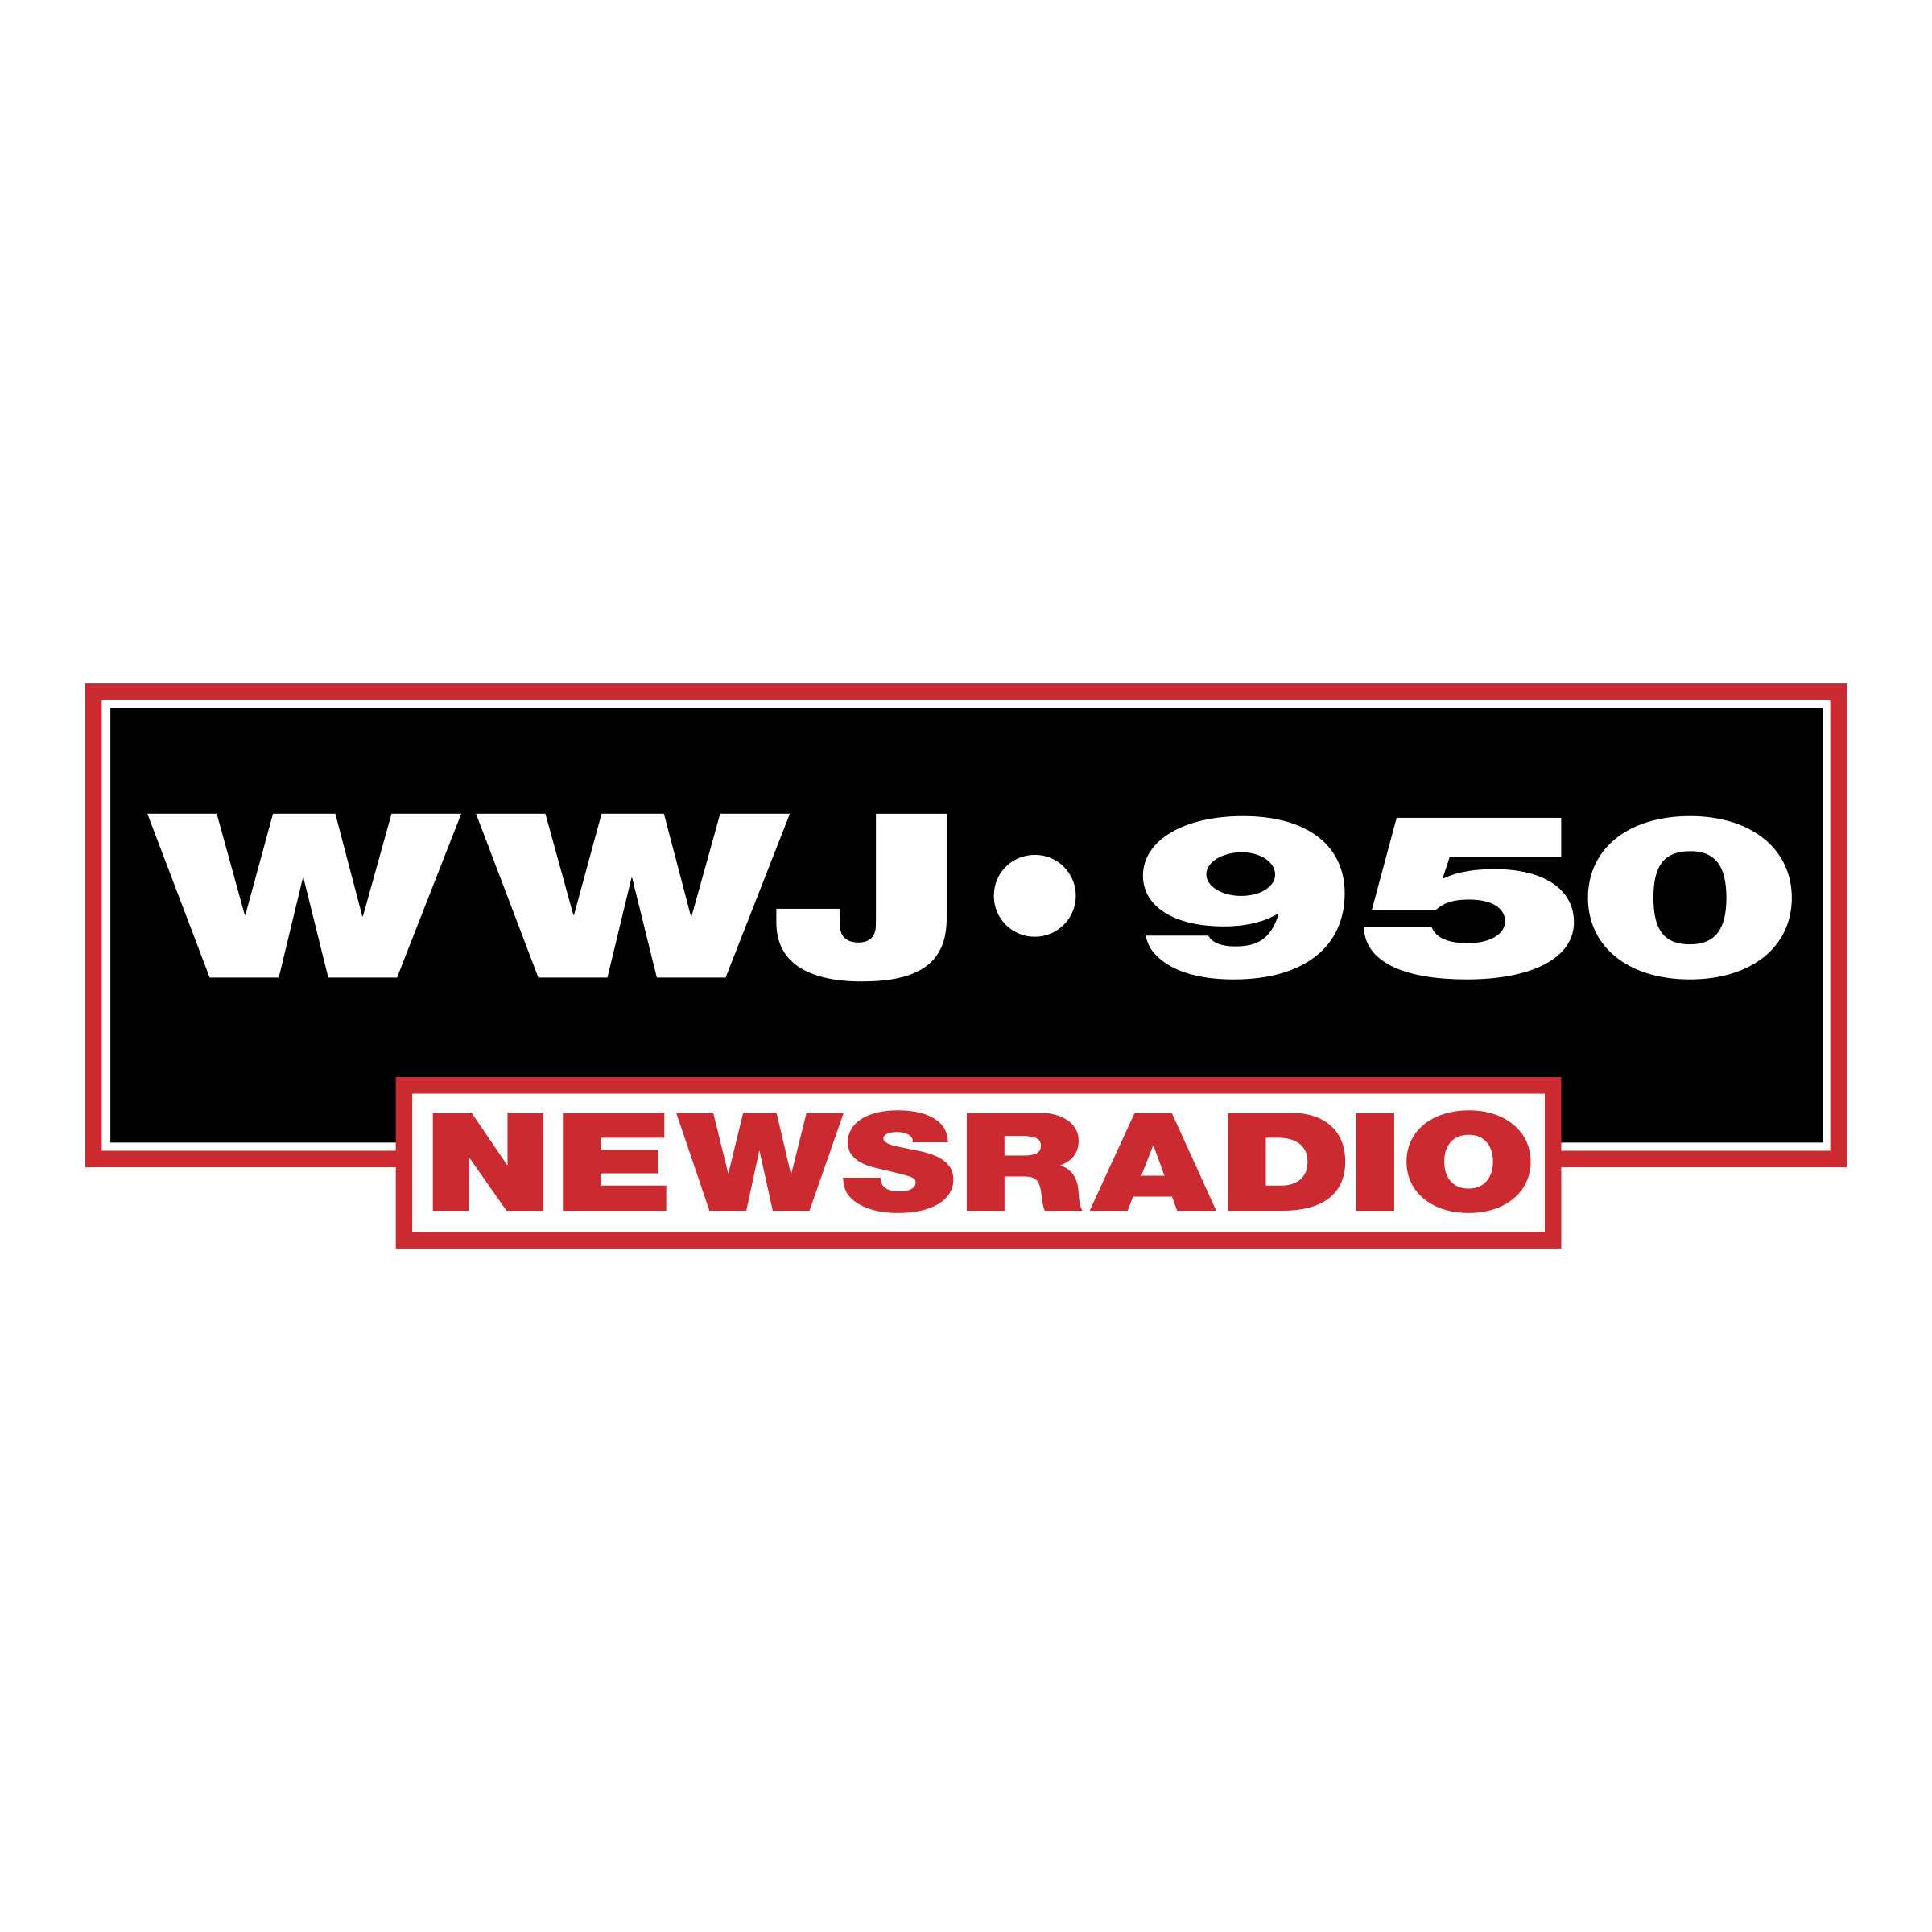 wwj-newsradio